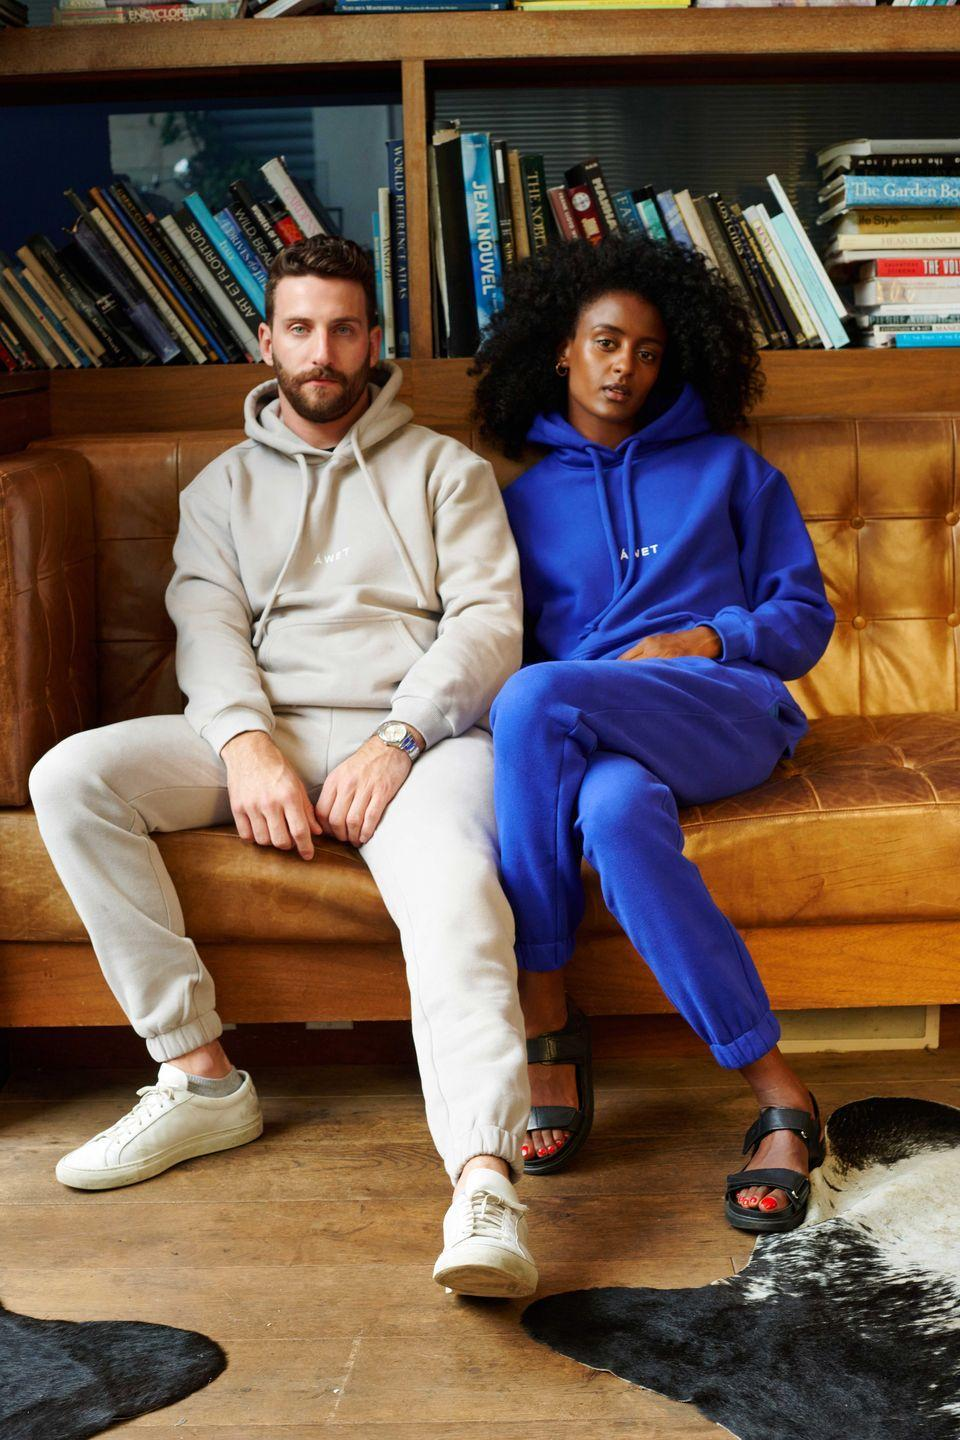 """<p><strong>Who:</strong> Áwet New York</p><p><strong>What:</strong> First """"livewear"""" collection</p><p><strong>Where: </strong>Available on <a href=""""https://go.redirectingat.com?id=74968X1596630&url=https%3A%2F%2Fwww.saksfifthavenue.com%2F&sref=https%3A%2F%2Fwww.elle.com%2Ffashion%2Fshopping%2Fg37500051%2Fthe-launch-septembers-hottest-fashion-launches%2F"""" rel=""""nofollow noopener"""" target=""""_blank"""" data-ylk=""""slk:saksfifthavenue.com"""" class=""""link rapid-noclick-resp"""">saksfifthavenue.com</a> and <a href=""""https://awetnyc.com/"""" rel=""""nofollow noopener"""" target=""""_blank"""" data-ylk=""""slk:awetnyc.com"""" class=""""link rapid-noclick-resp"""">awetnyc.com</a> and in selects Saks stores nationwide</p><p><strong>Why: </strong>Áwet New York was founded by Eritrean refugee Áwet Woldegebriel in 2020. (The name """"Áwet"""" translates to """"victory"""" in his native Tigrinya language.) Woldegebriel, who gained asylum to America in 2000, created a clothing line that is a two-part love letter to New York. His first goal is to support garment workers during the pandemic by giving them work, and the second is to create a """"livewear"""" collection that is directly inspired by the casual and modern classics New Yorkers find themselves wearing day in and day out. Through these efforts, the designer hopes to inspire other communities to find """"victory"""" amid the chaos of the world.</p><p><a class=""""link rapid-noclick-resp"""" href=""""https://awetnyc.com/"""" rel=""""nofollow noopener"""" target=""""_blank"""" data-ylk=""""slk:SHOP NOW"""">SHOP NOW</a><br></p>"""